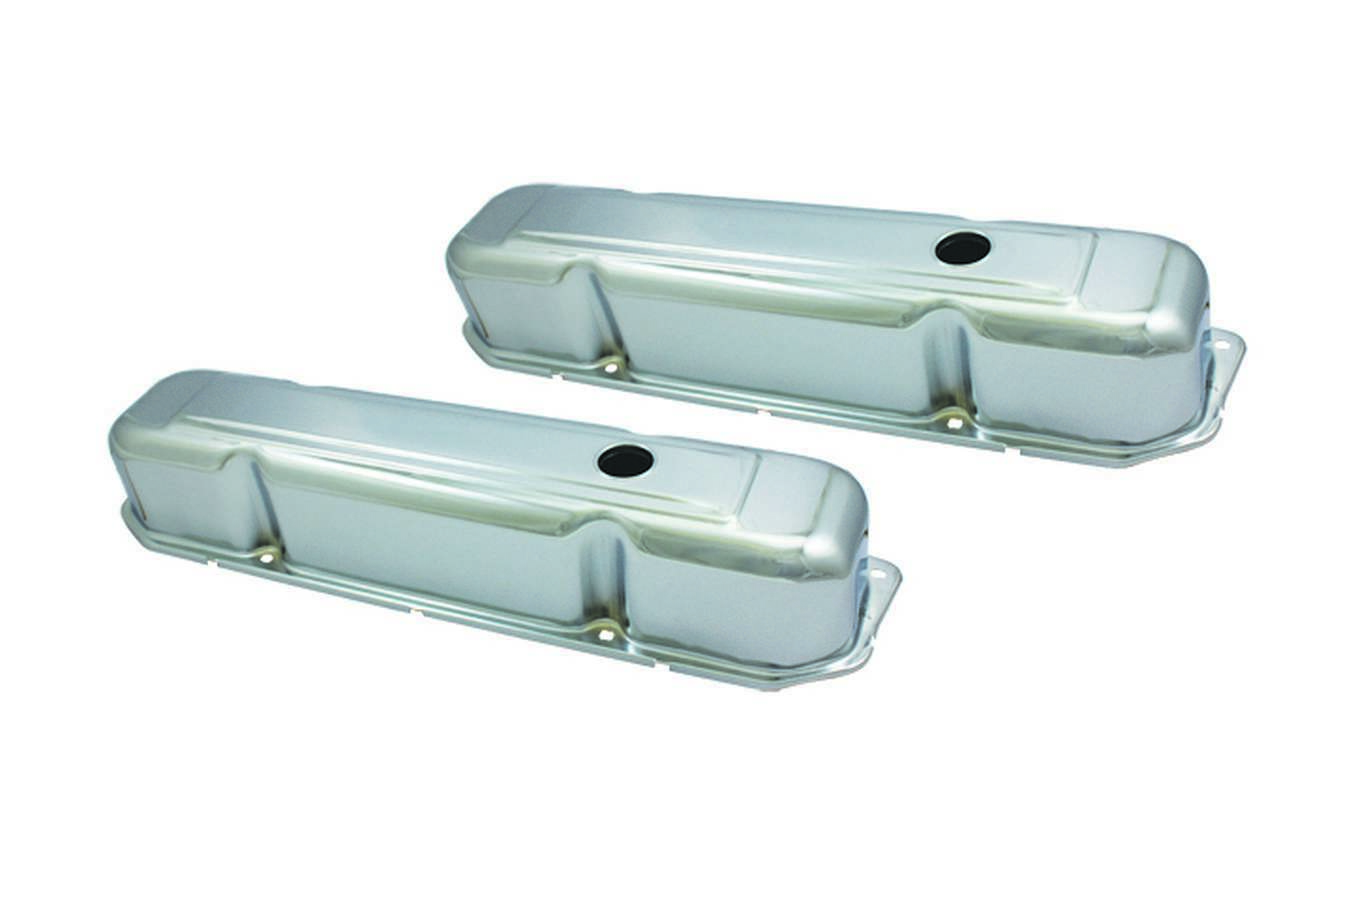 Specialty Products 8547 Valve Cover, Stock Height, Baffled, Breather Holes, Steel, Chrome, Mopar RB-Series, Pair